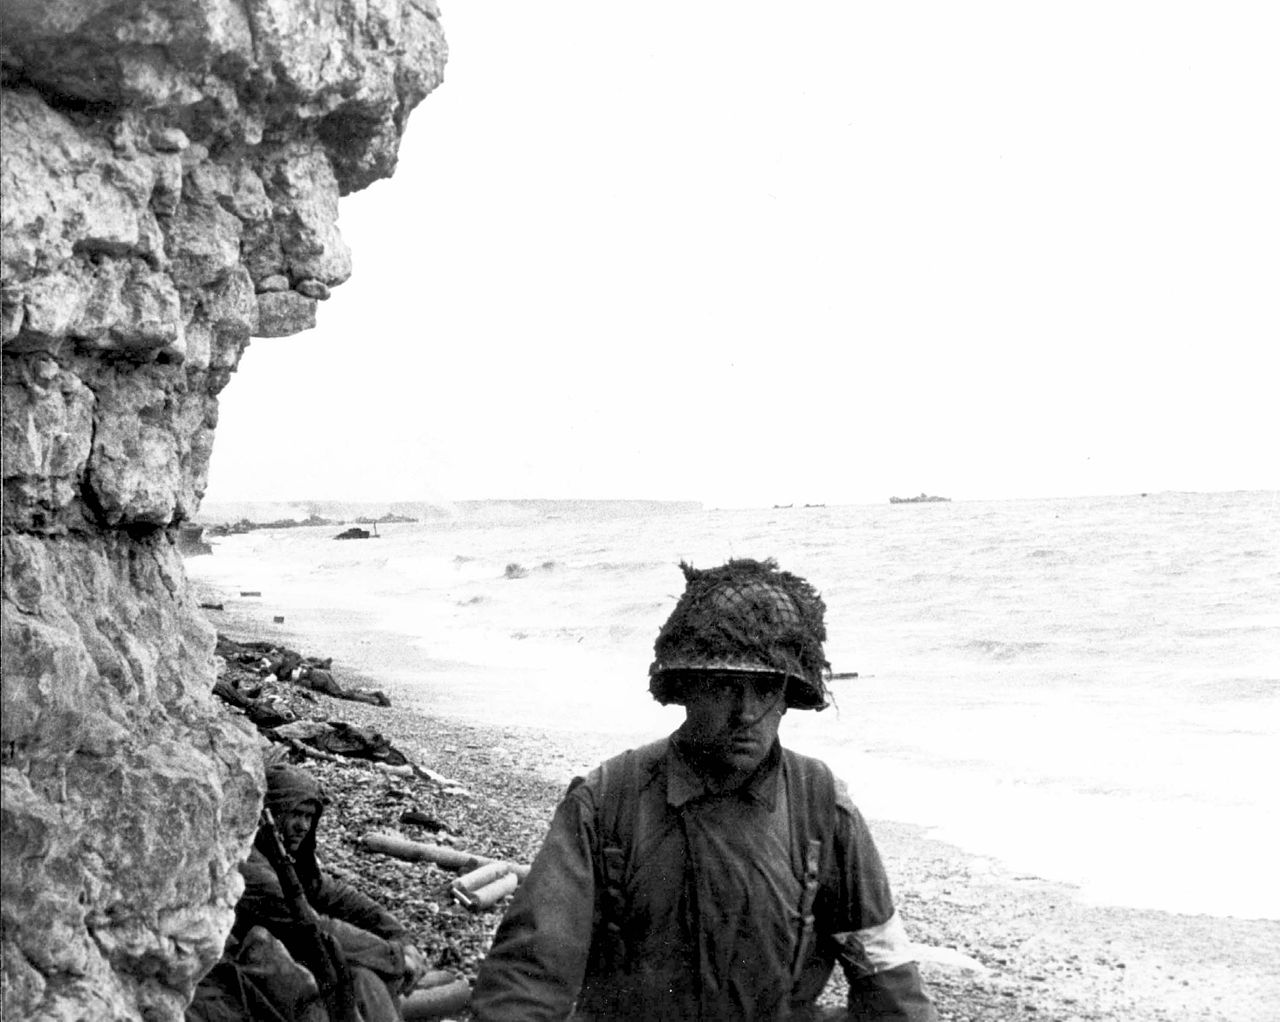 A medic of the 3d Bn., 16th Inf. Regt., 1st U.S. Inf. Div., moves along a narrow strip of Omaha Beach administering first aid to men wounded in the landing.